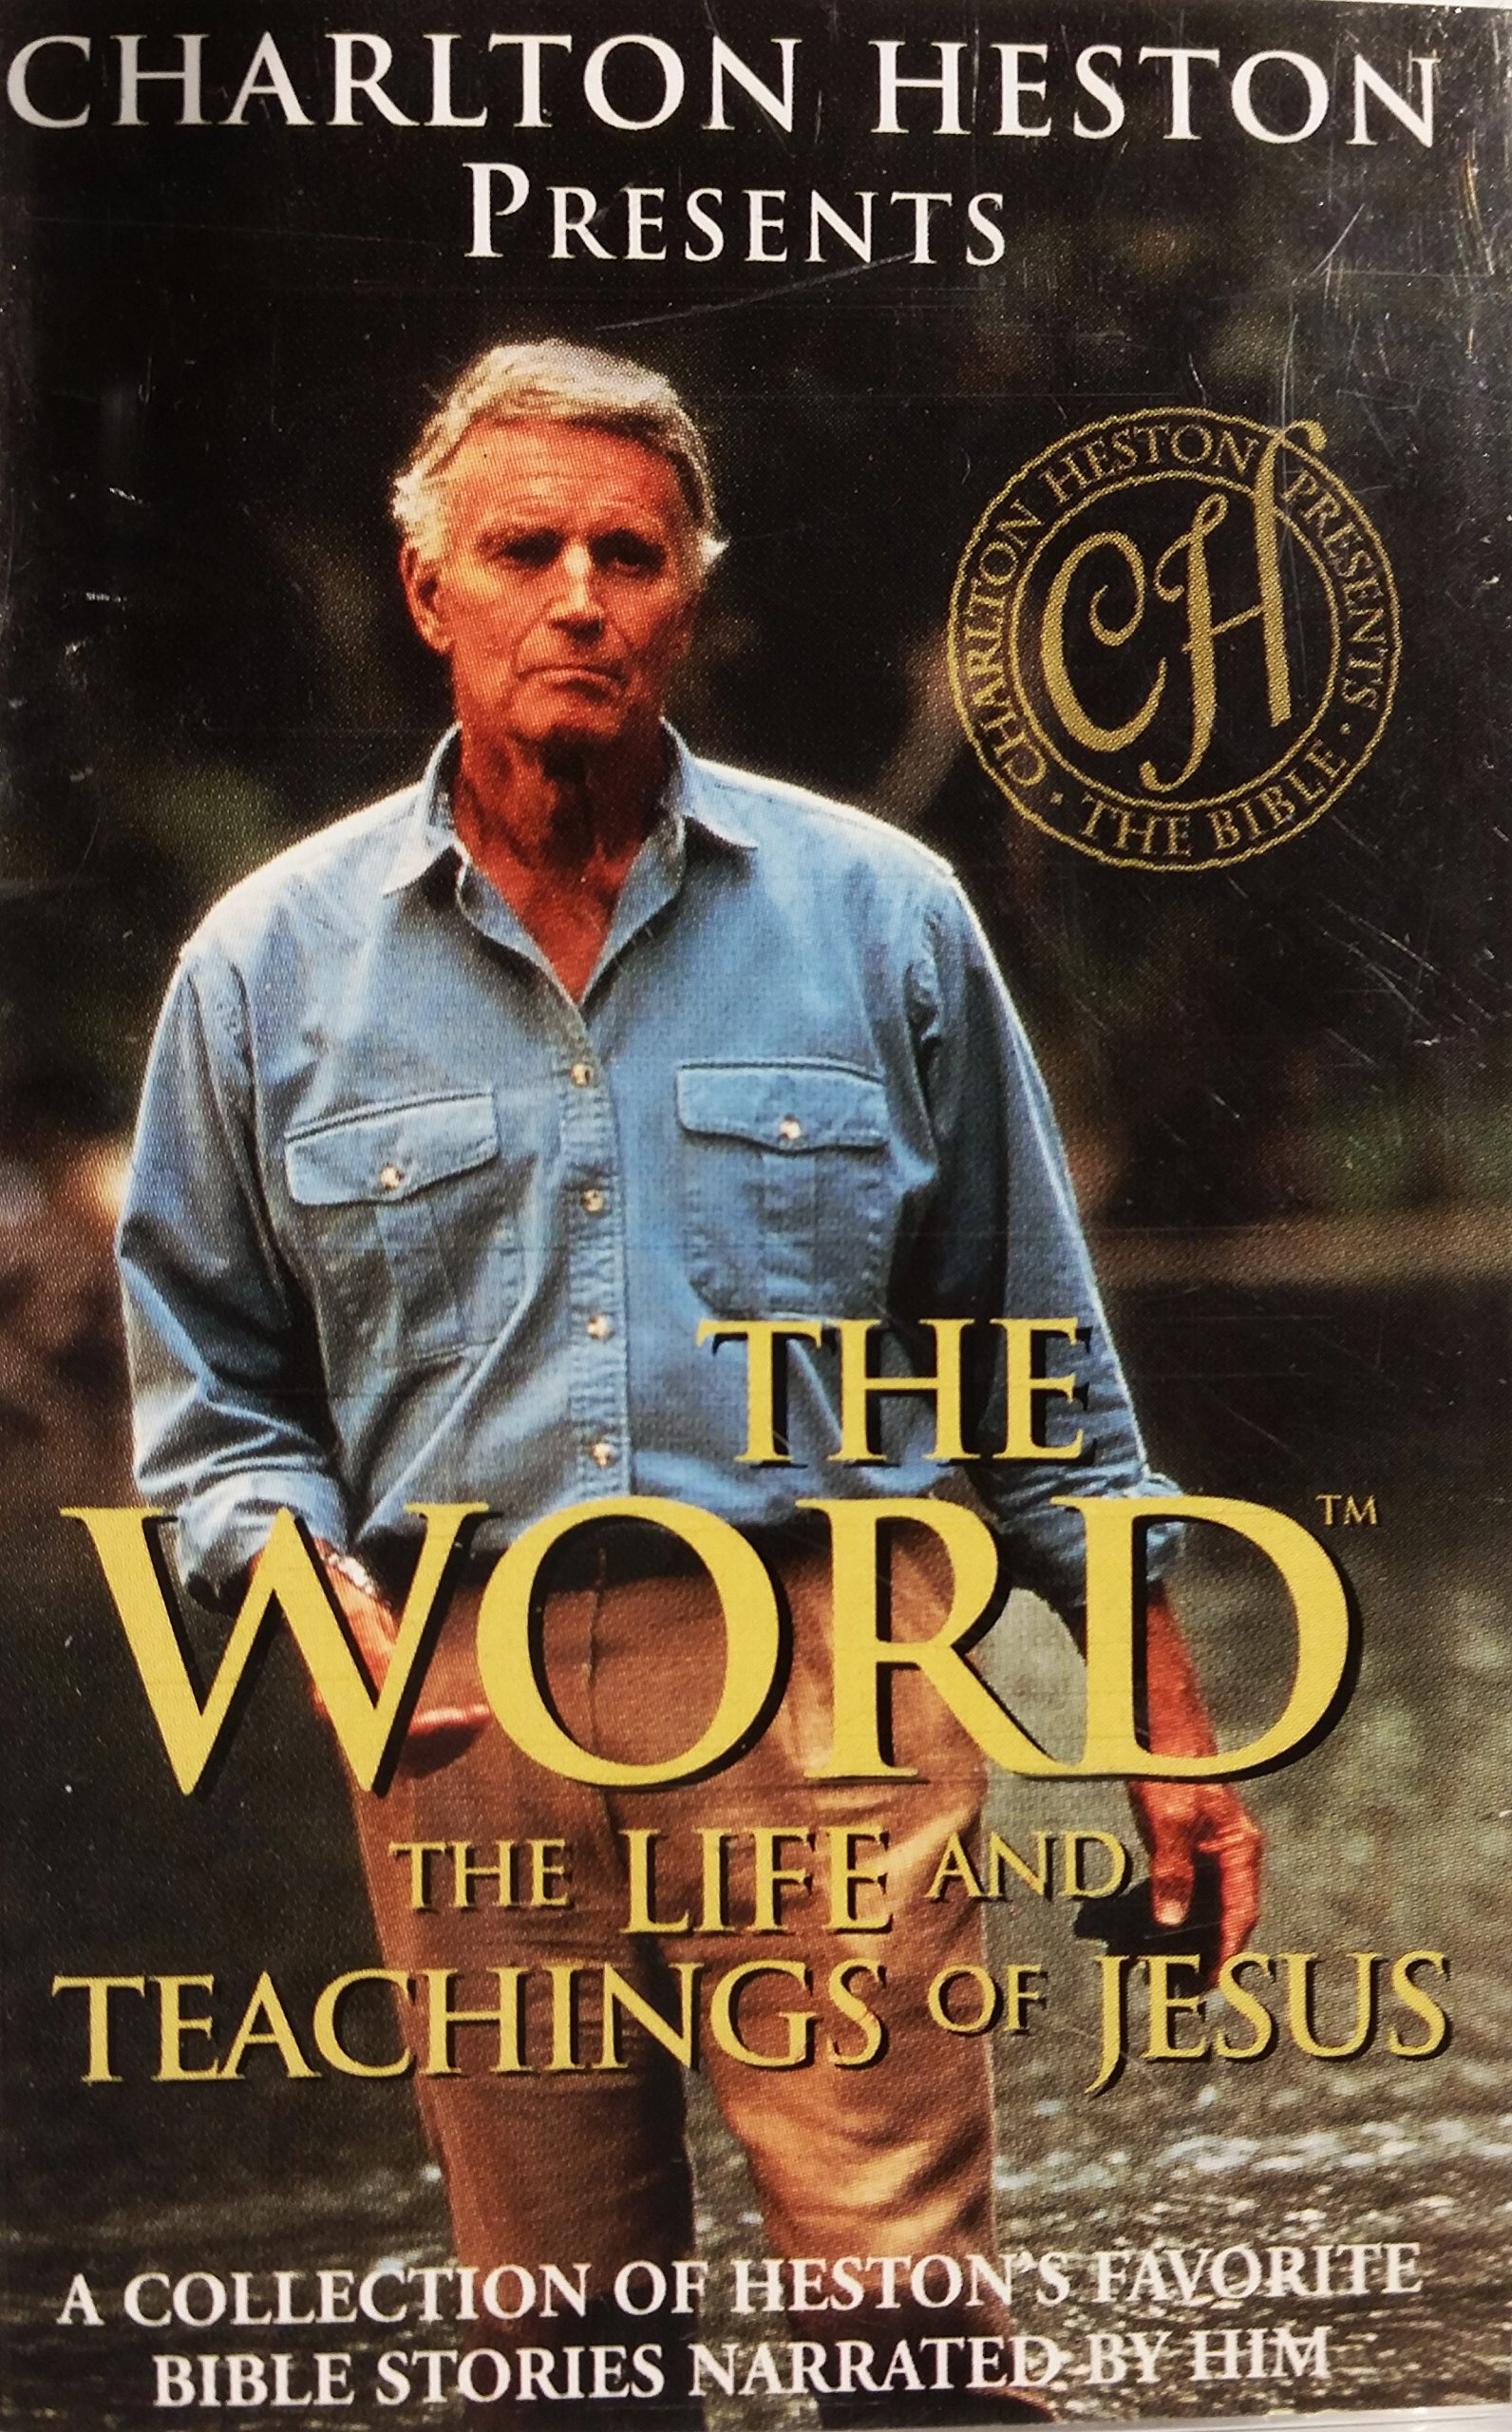 Charlton Heston Presents - The Word - The Life and Teachings of Jesus - A Collection of Heston's Favorite Bible Stories